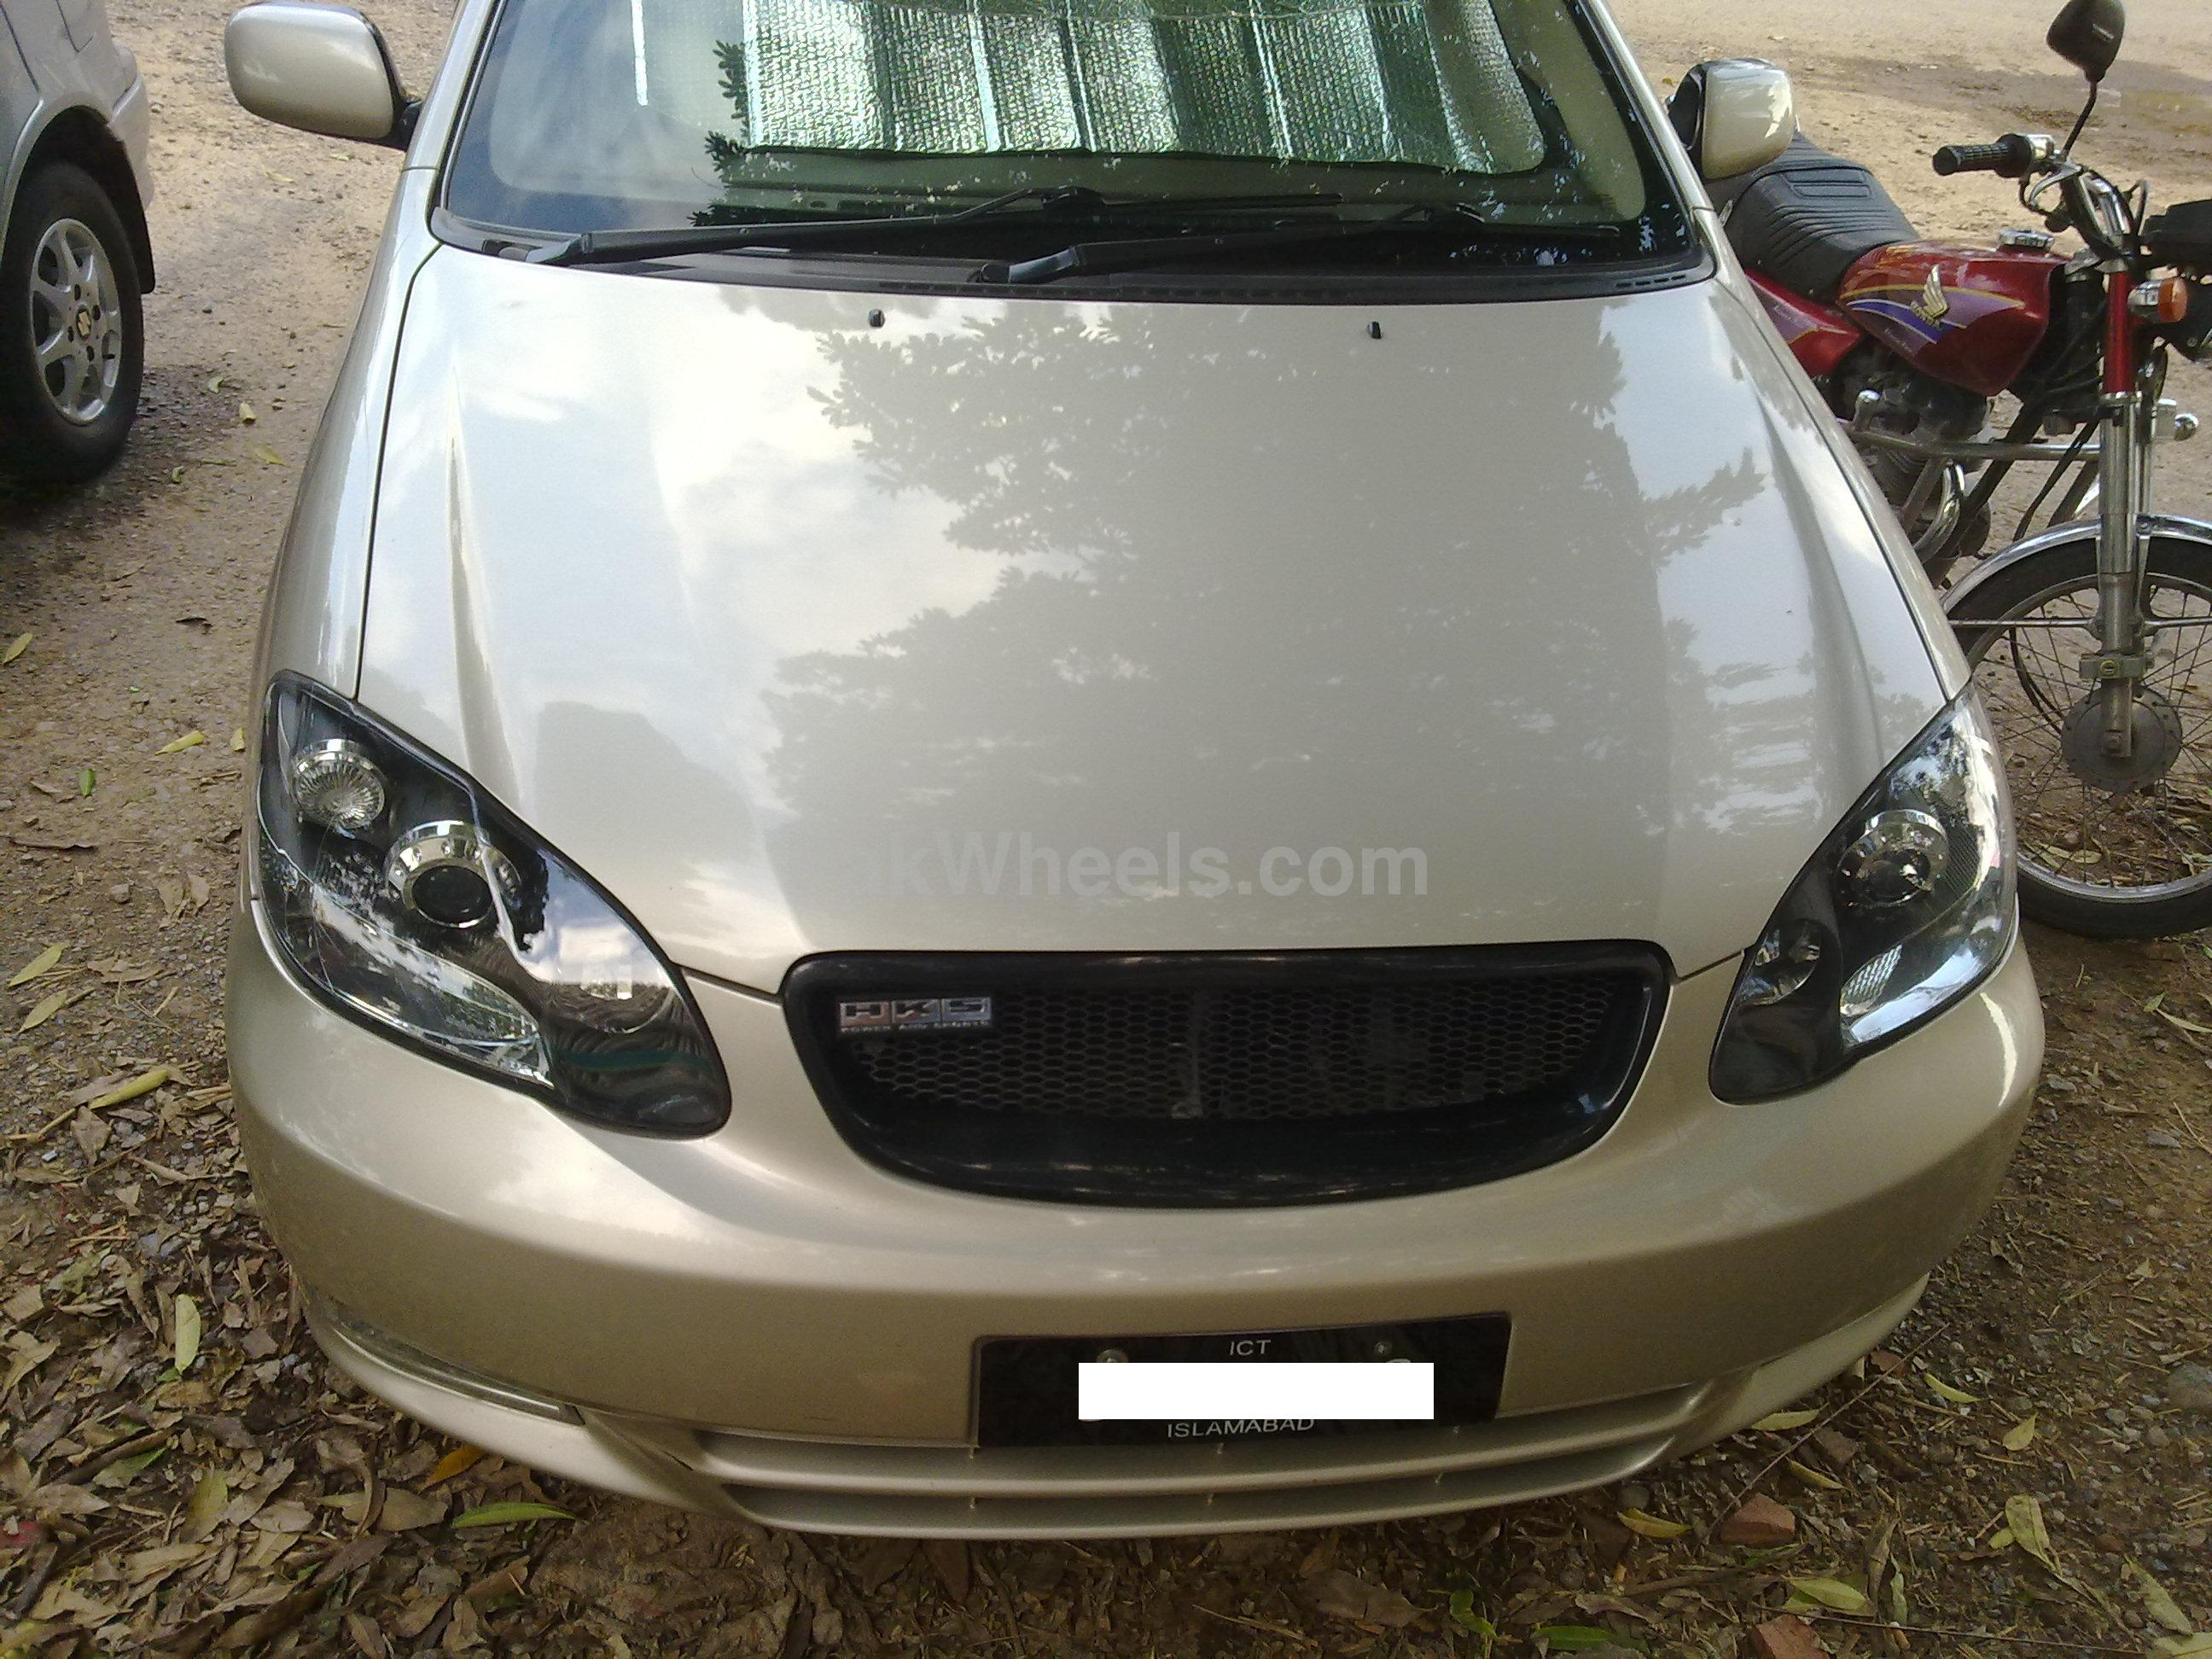 used toyota corolla altis 1 8 2006 car for sale in islamabad 129344 pakwheels. Black Bedroom Furniture Sets. Home Design Ideas